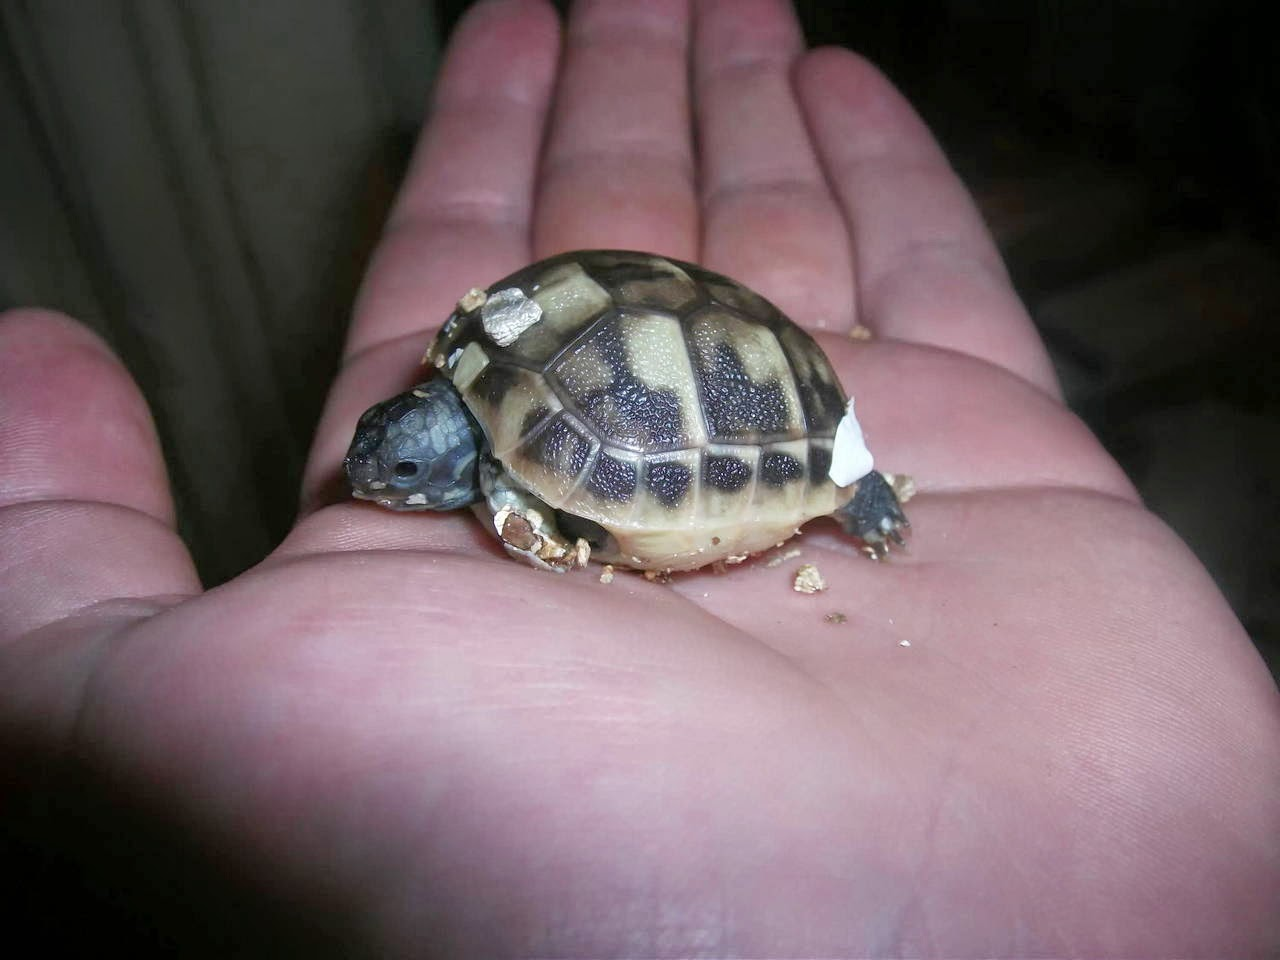 Funny animals of the week - 9 May 2014 (40 pics), cute animals, animal photos, cute little baby turtle